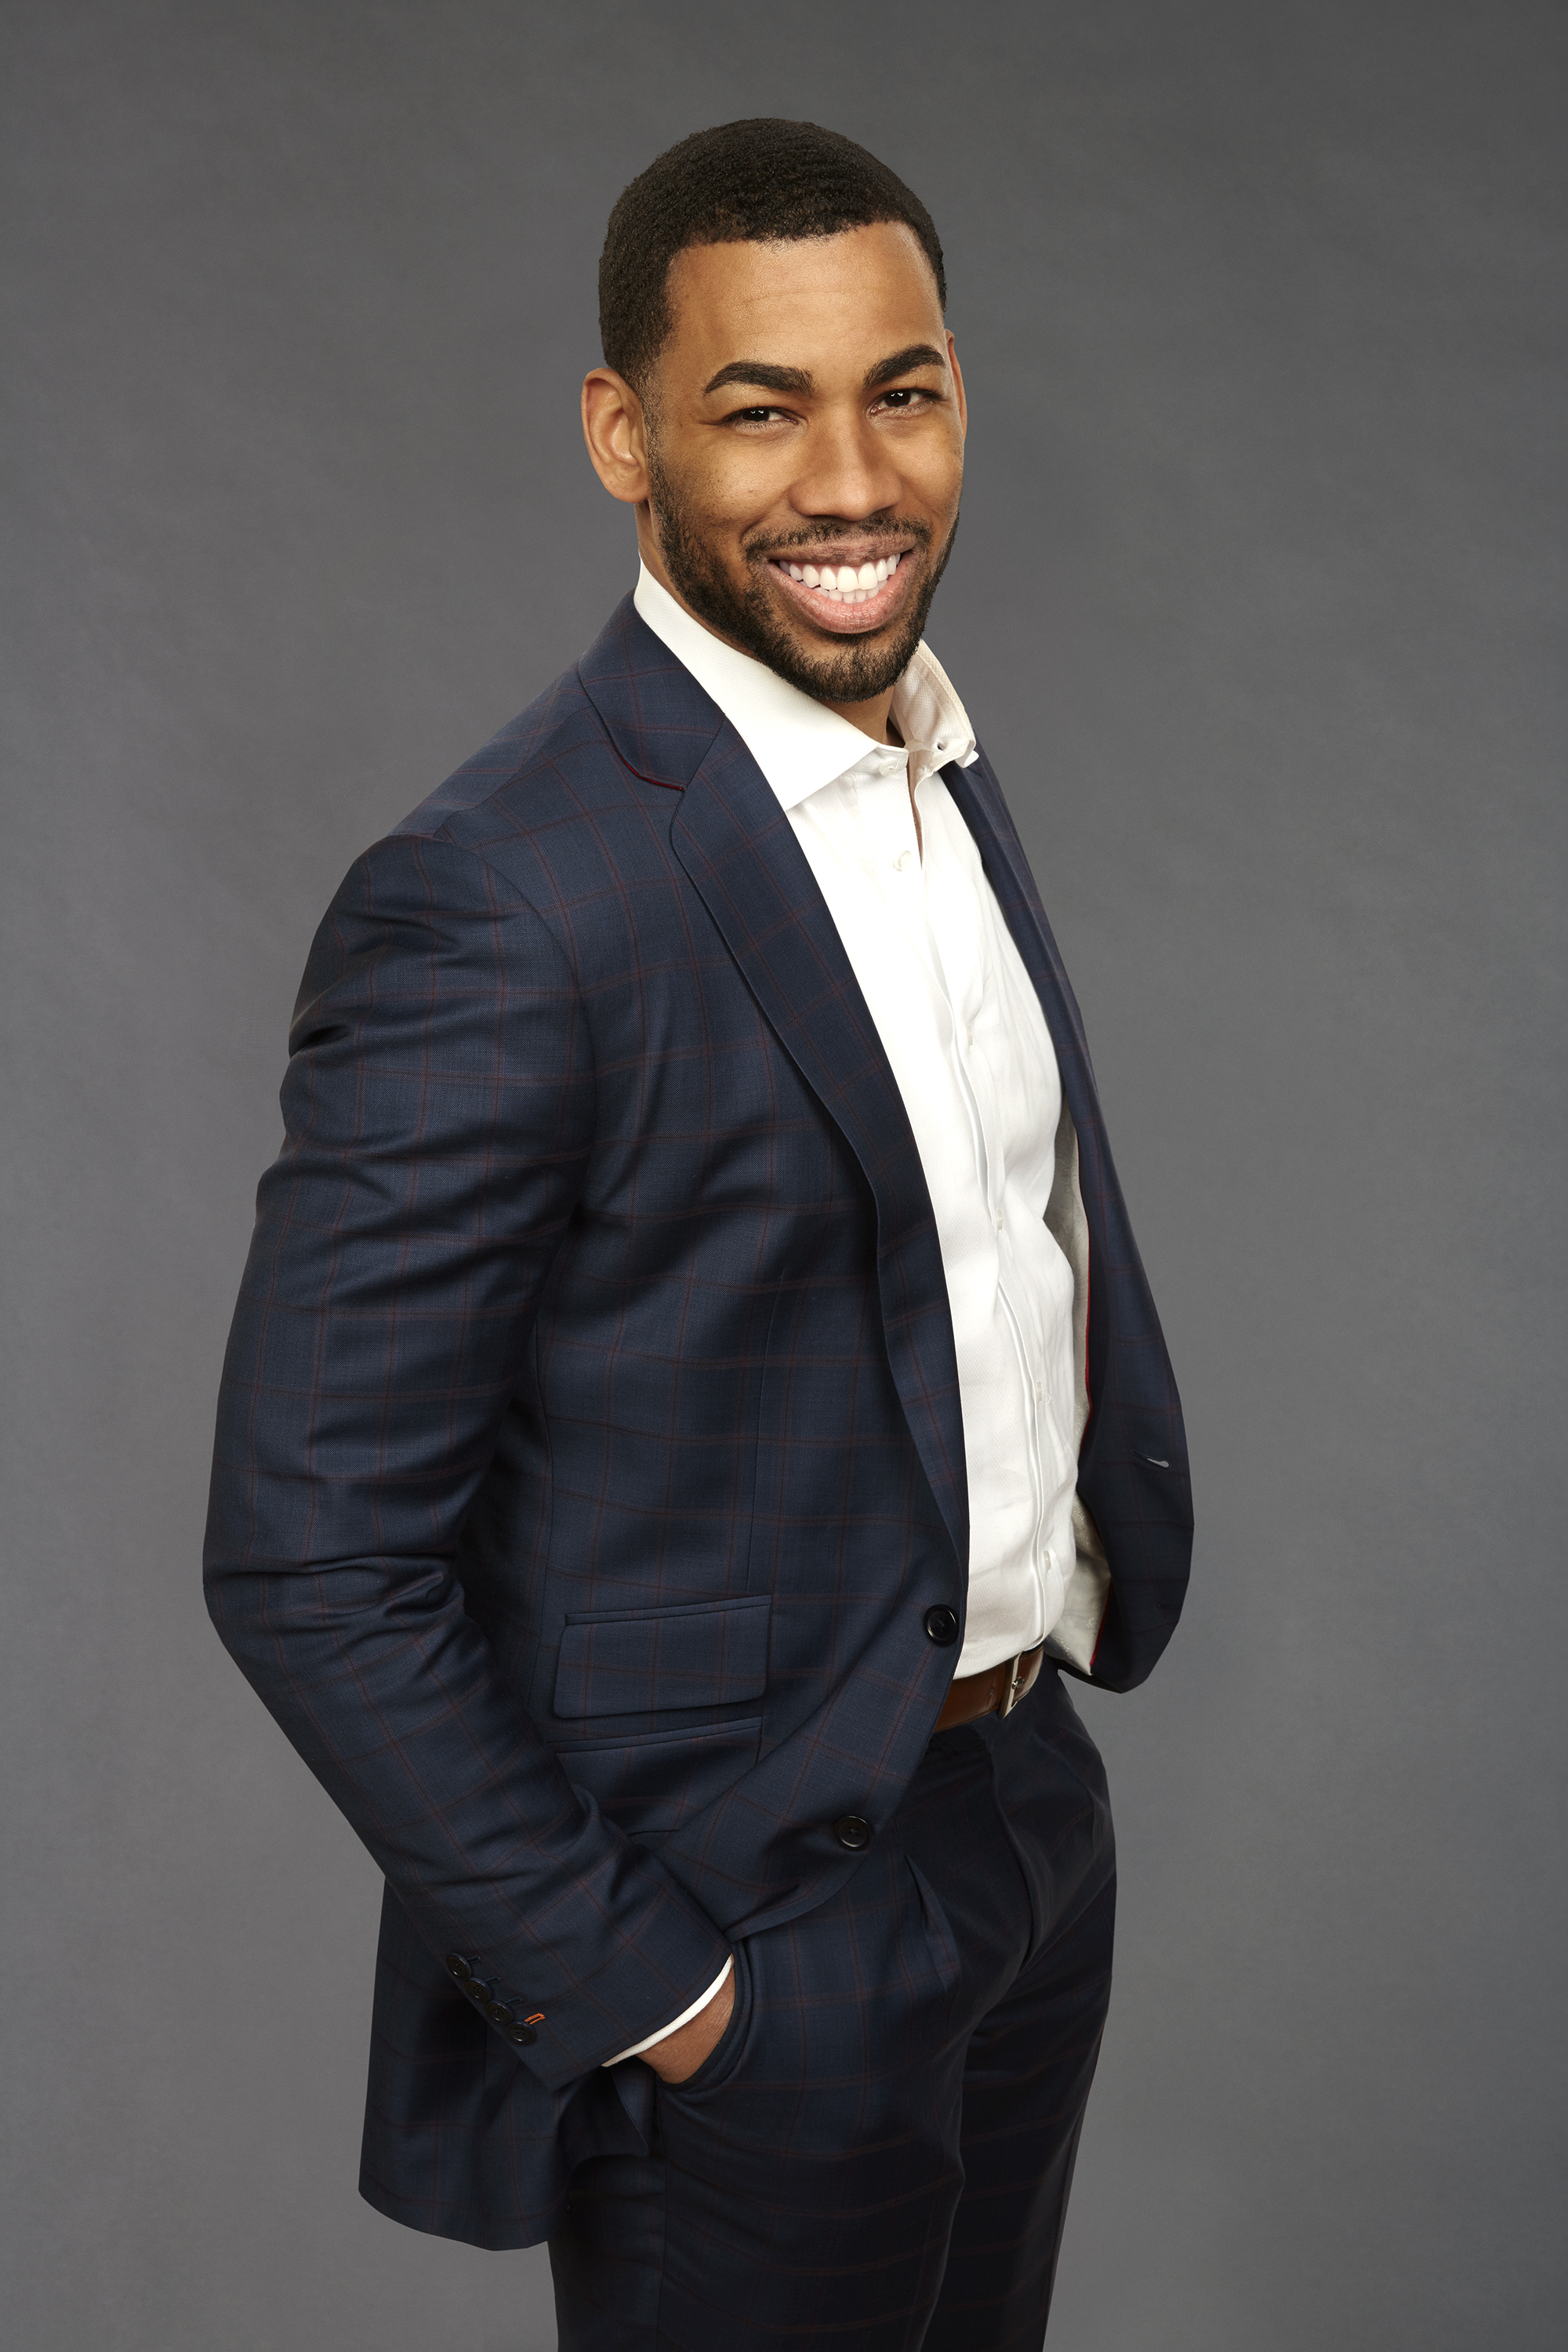 Bachelorette 15 - Mike Johnson - *Sleuthing Spoilers* A721b76a-606a-4cf0-9462-bcd01d7c5805